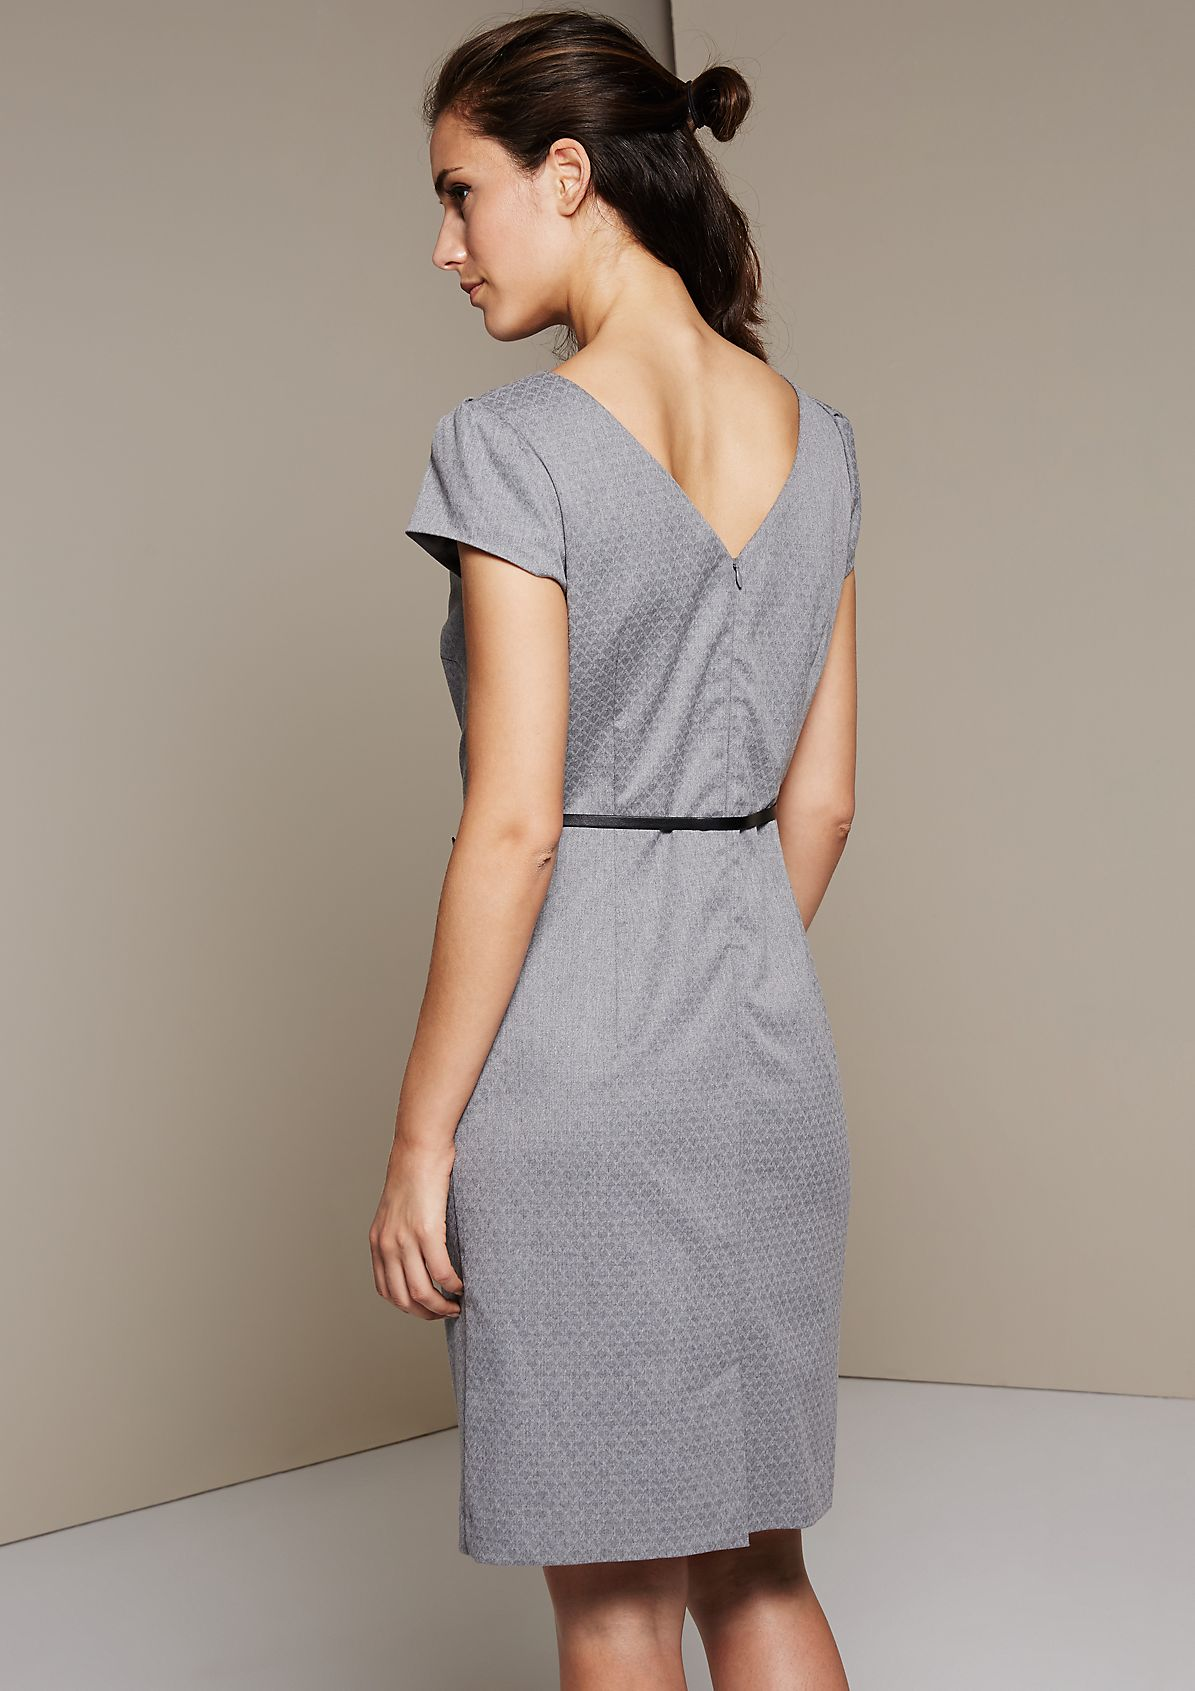 Elegant evening dress with a sophisticated tonal pattern from s.Oliver